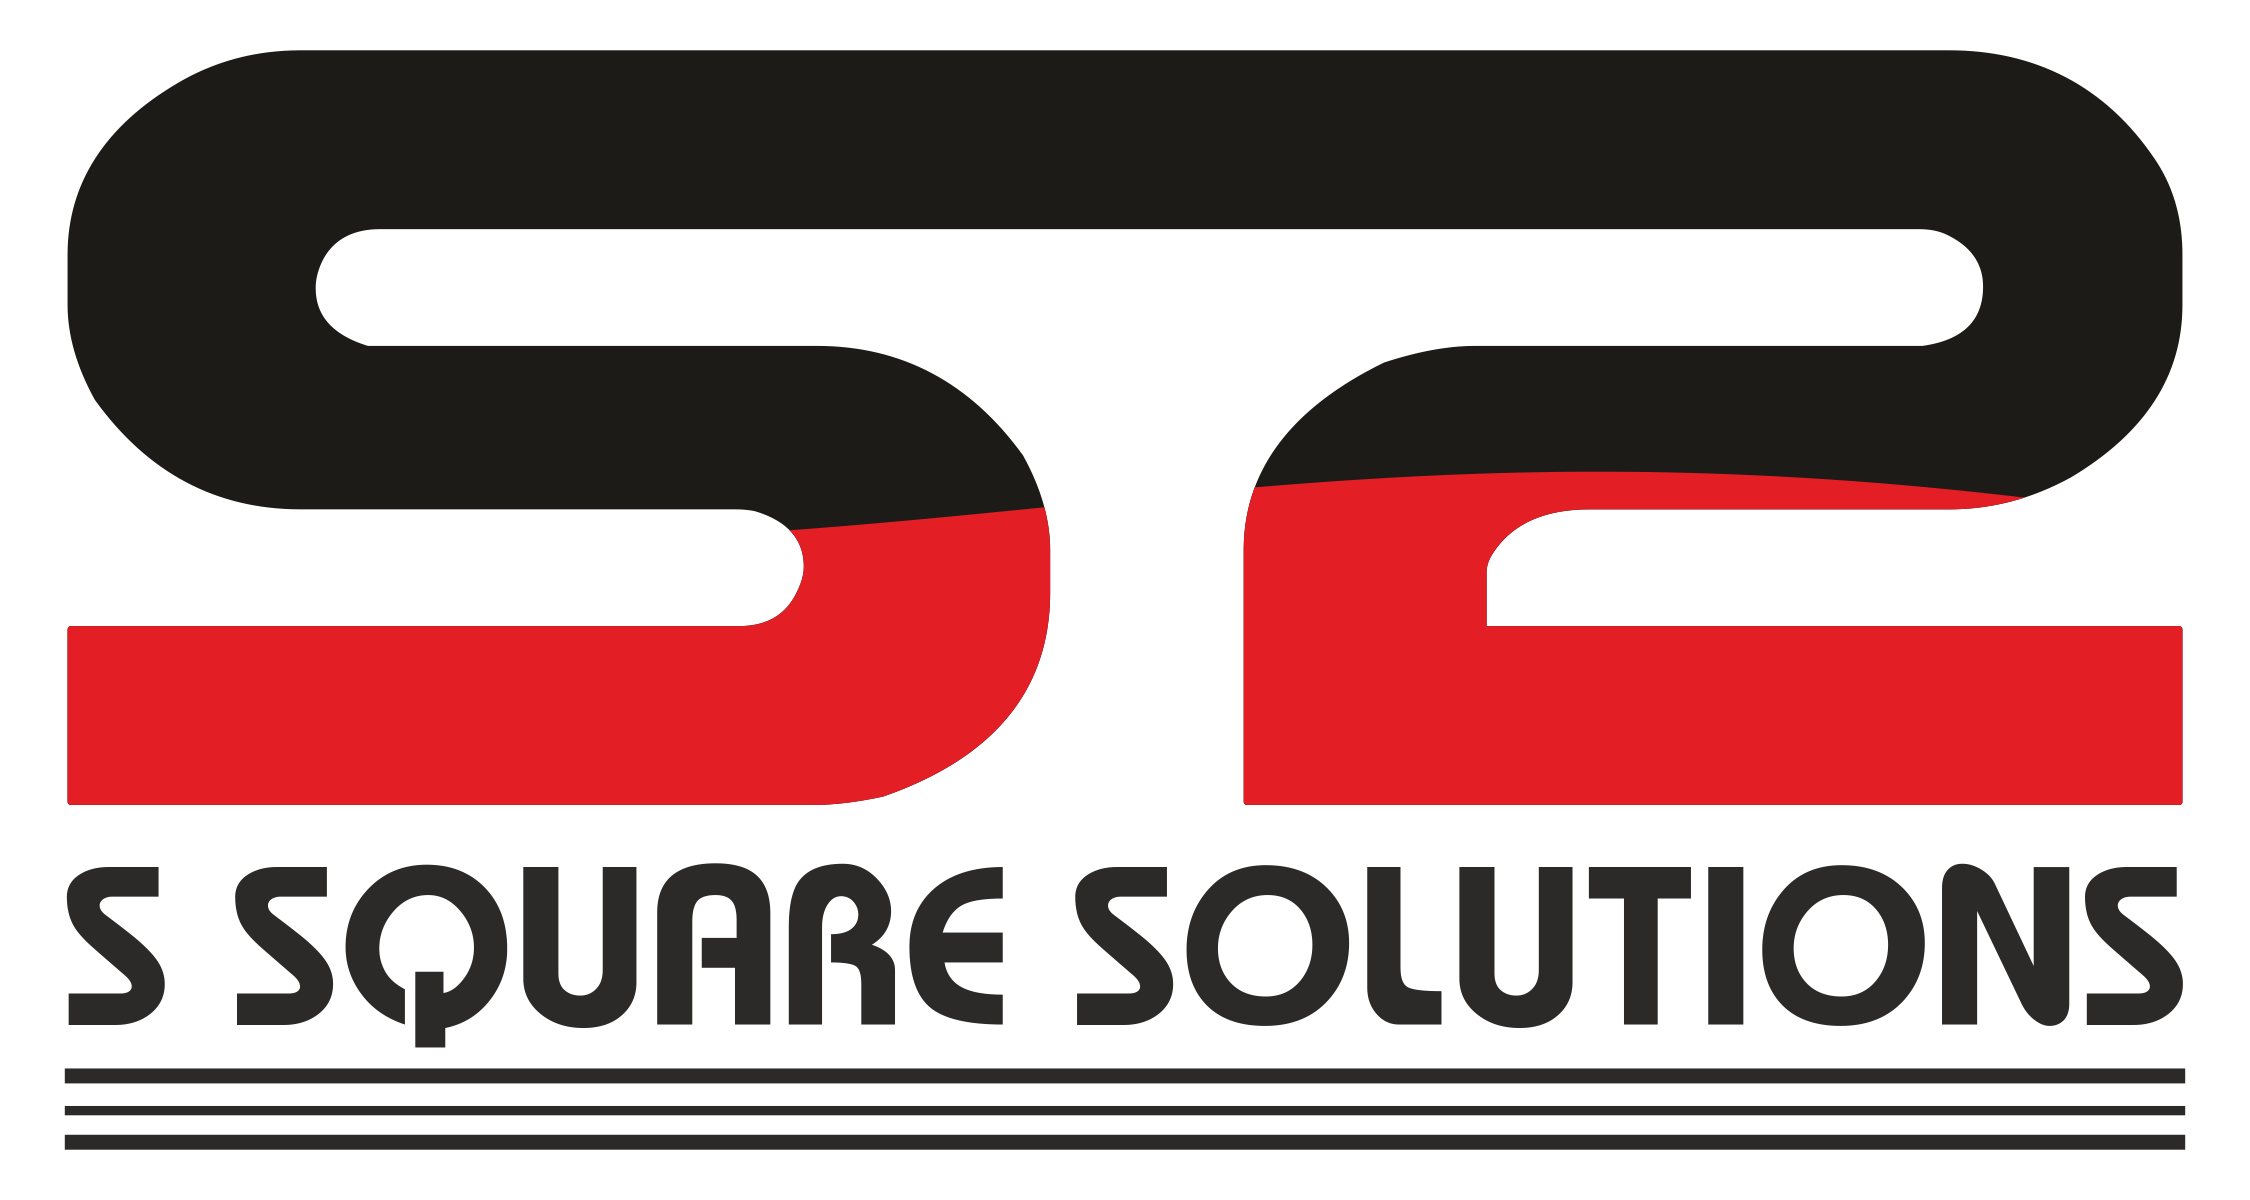 S Square solutions